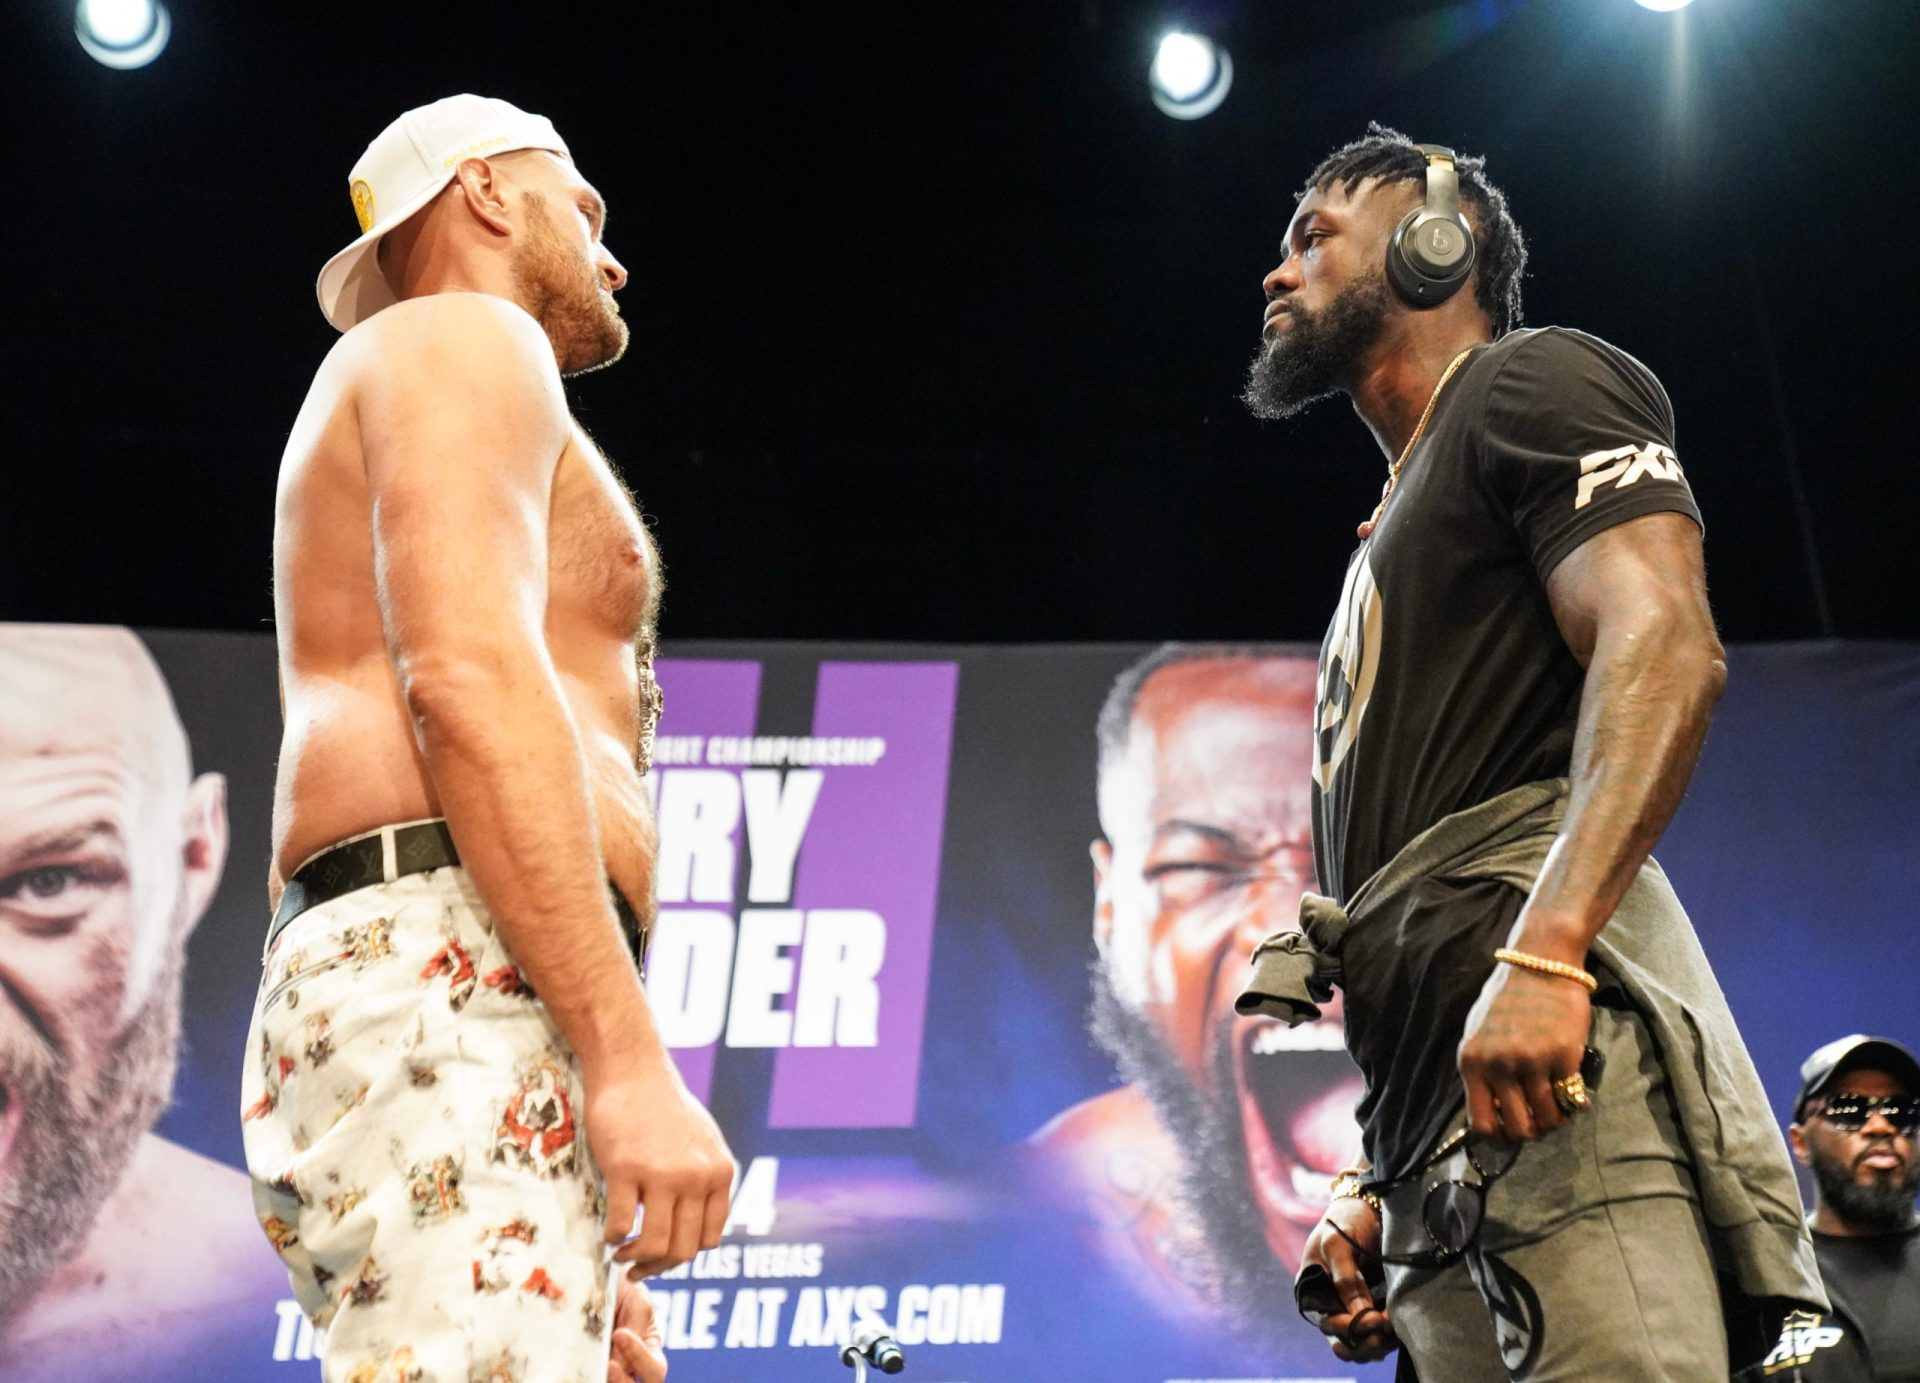 Fury-Wilder 3 set for Oct 9, Tyson Fury tests COVID-19 negative - THE SPORTS ROOM